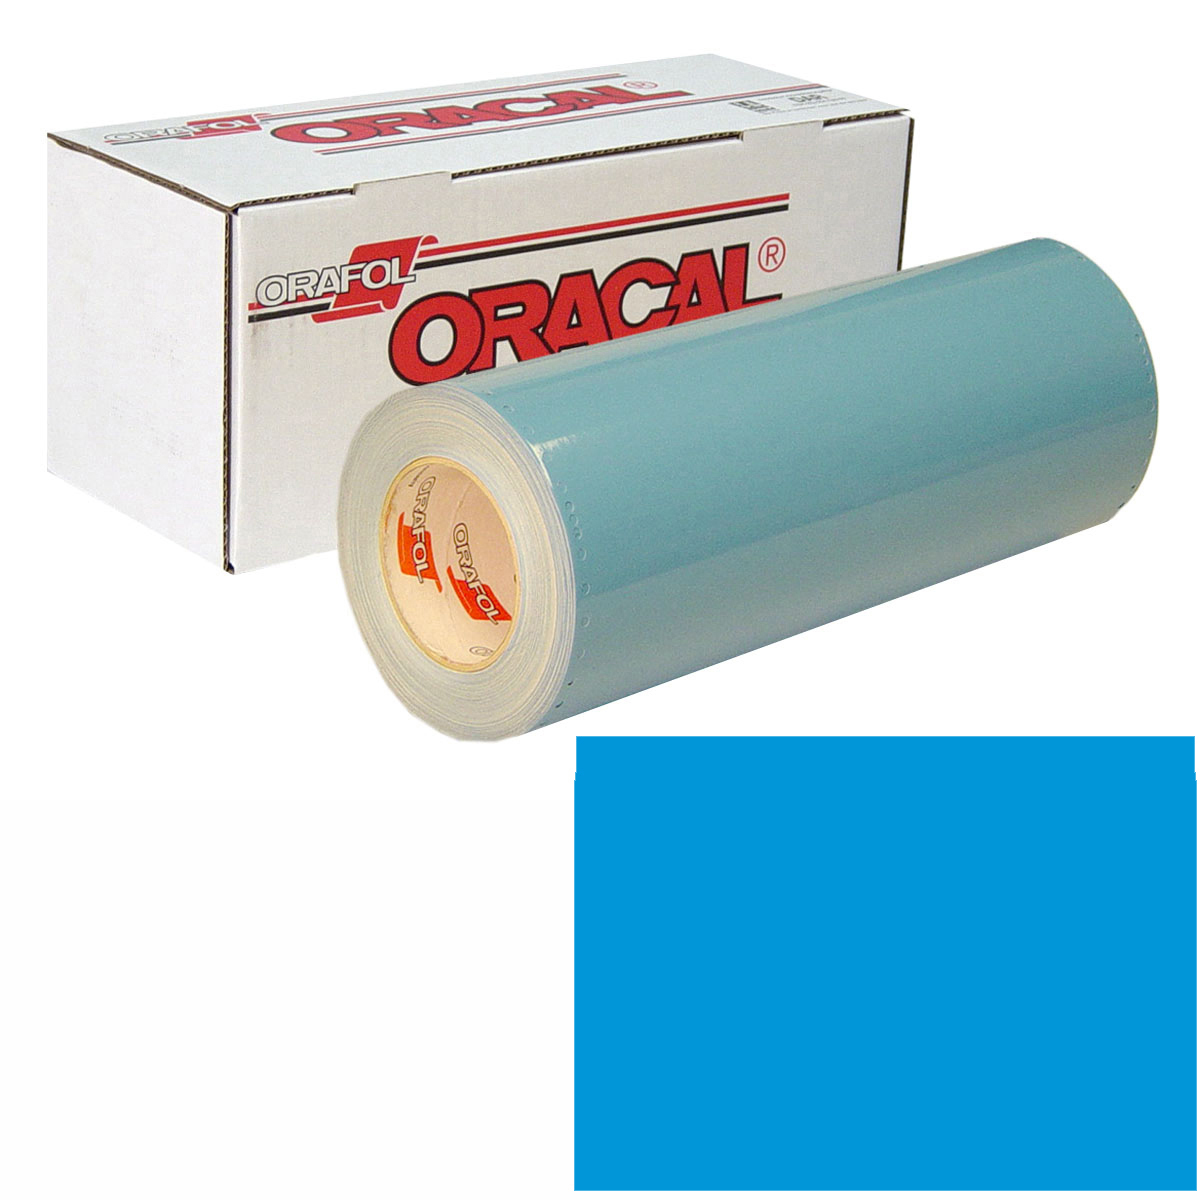 ORACAL 751 Unp 48In X 50Yd 052 Azure Blue